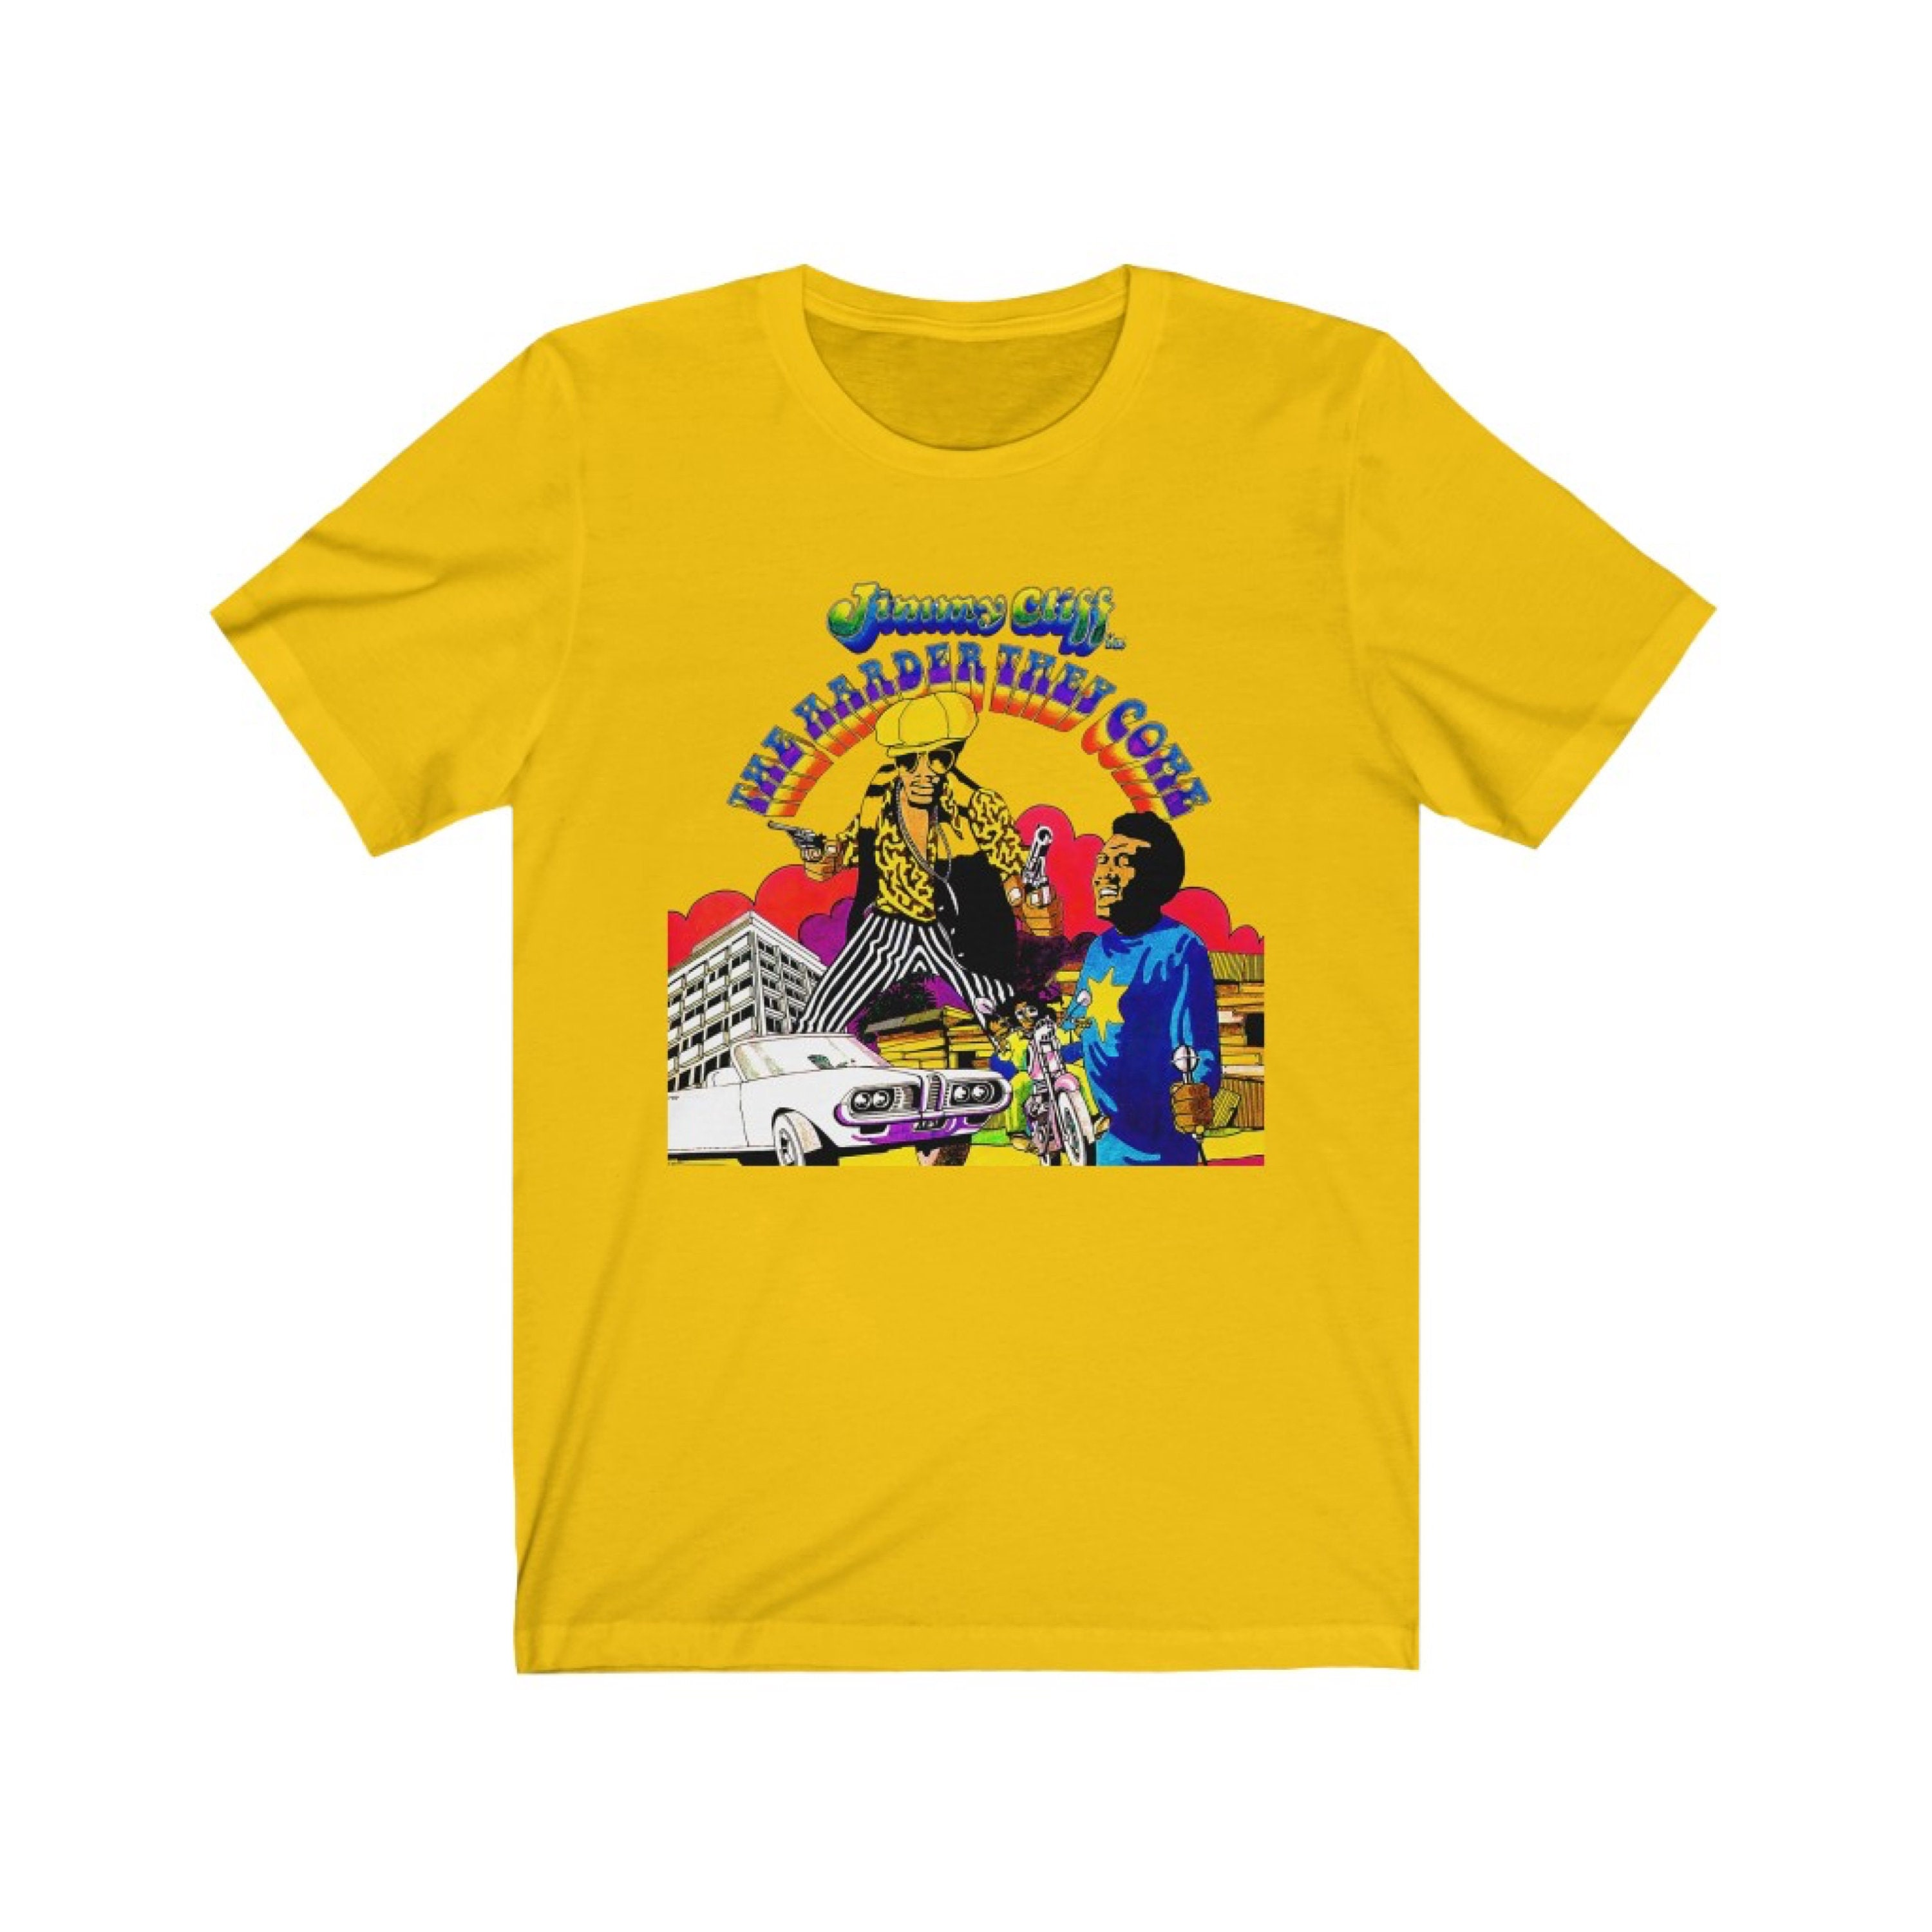 Jimmy CLIFF The Harder They Come Reggae Musique T Shirt